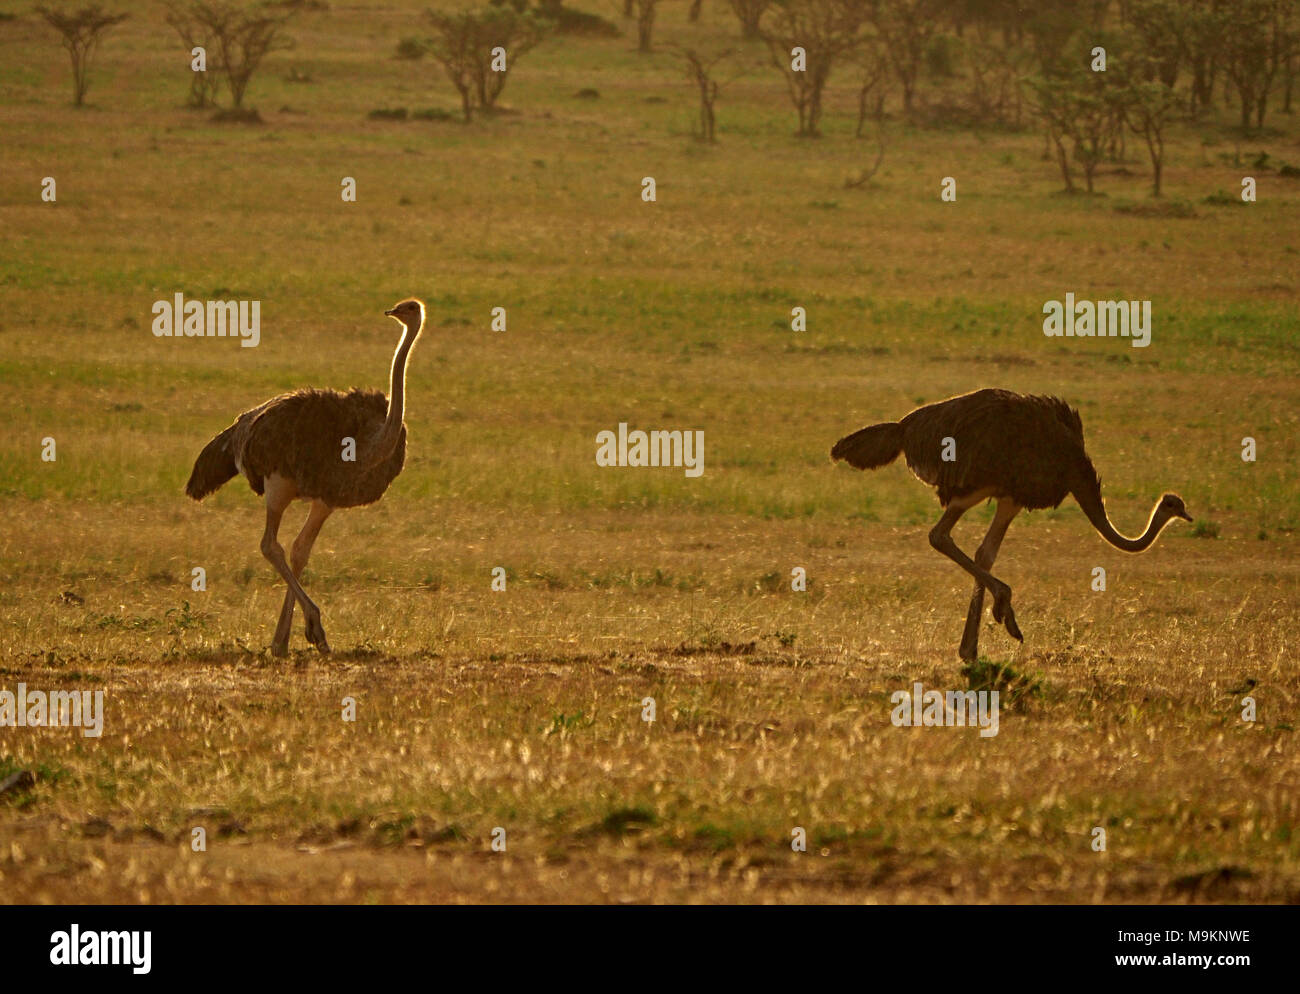 Two female common ostrich (Struthio camelus) backlit as they range across the plains of the Masai Mara, foraging for morsels of food in Kenya, Africa - Stock Image